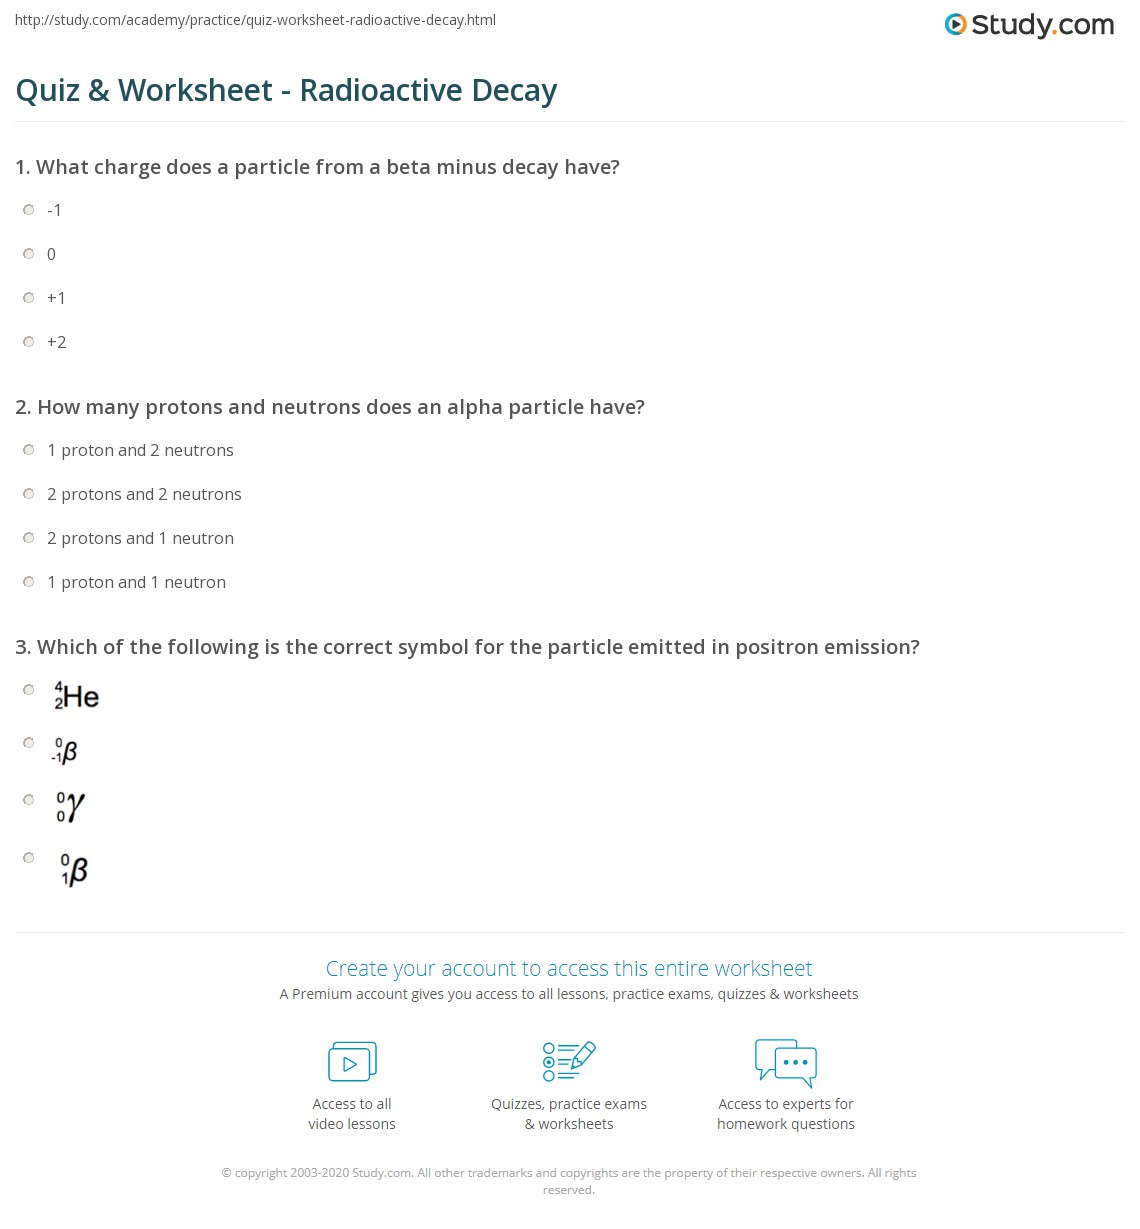 Quiz Worksheet Radioactive Decay Study